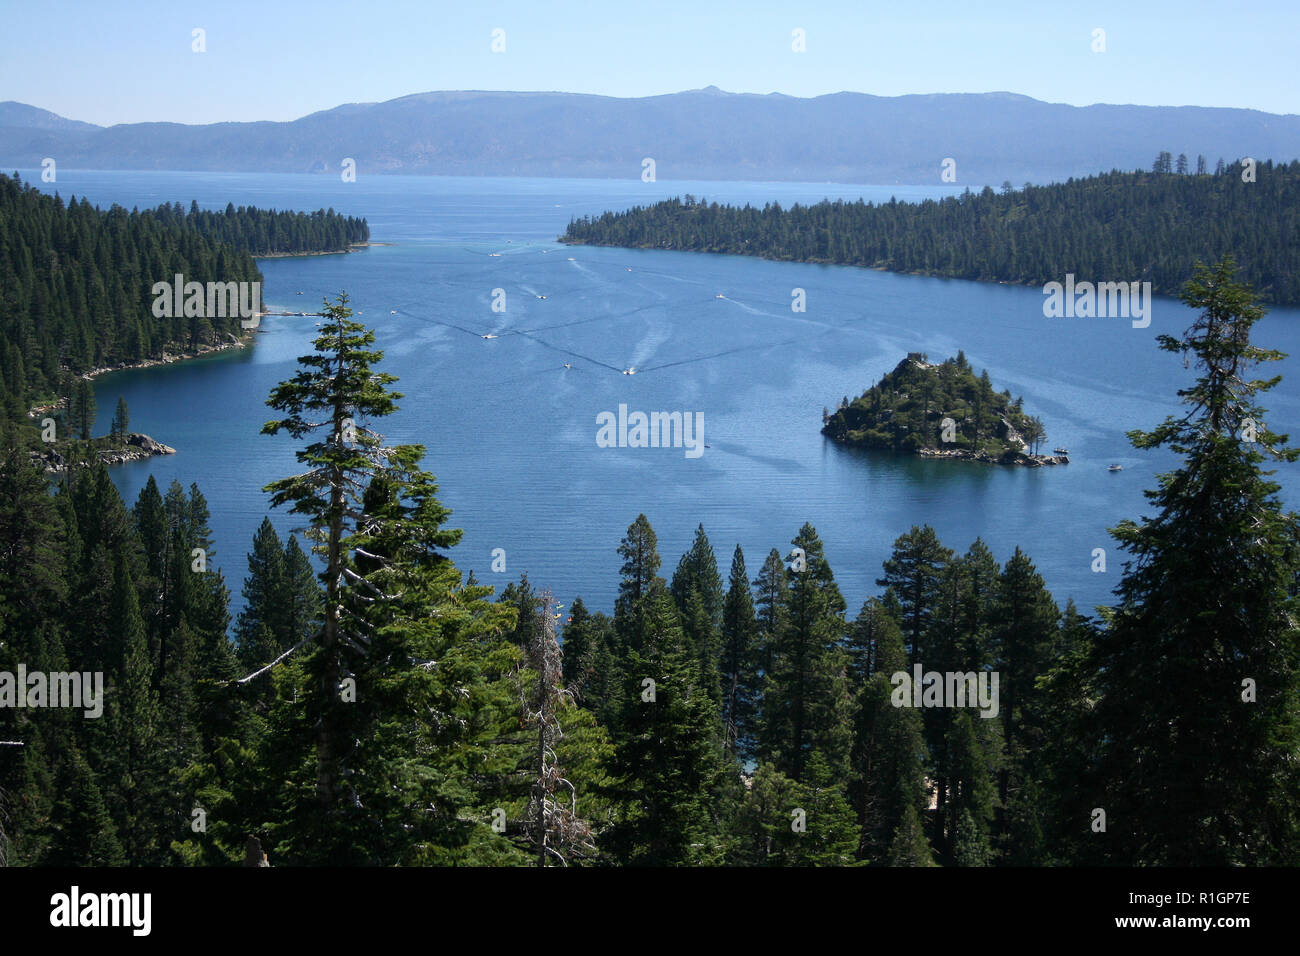 Birdseye view of Lake Tahoe and surrounding evergreen forest, California - Stock Image